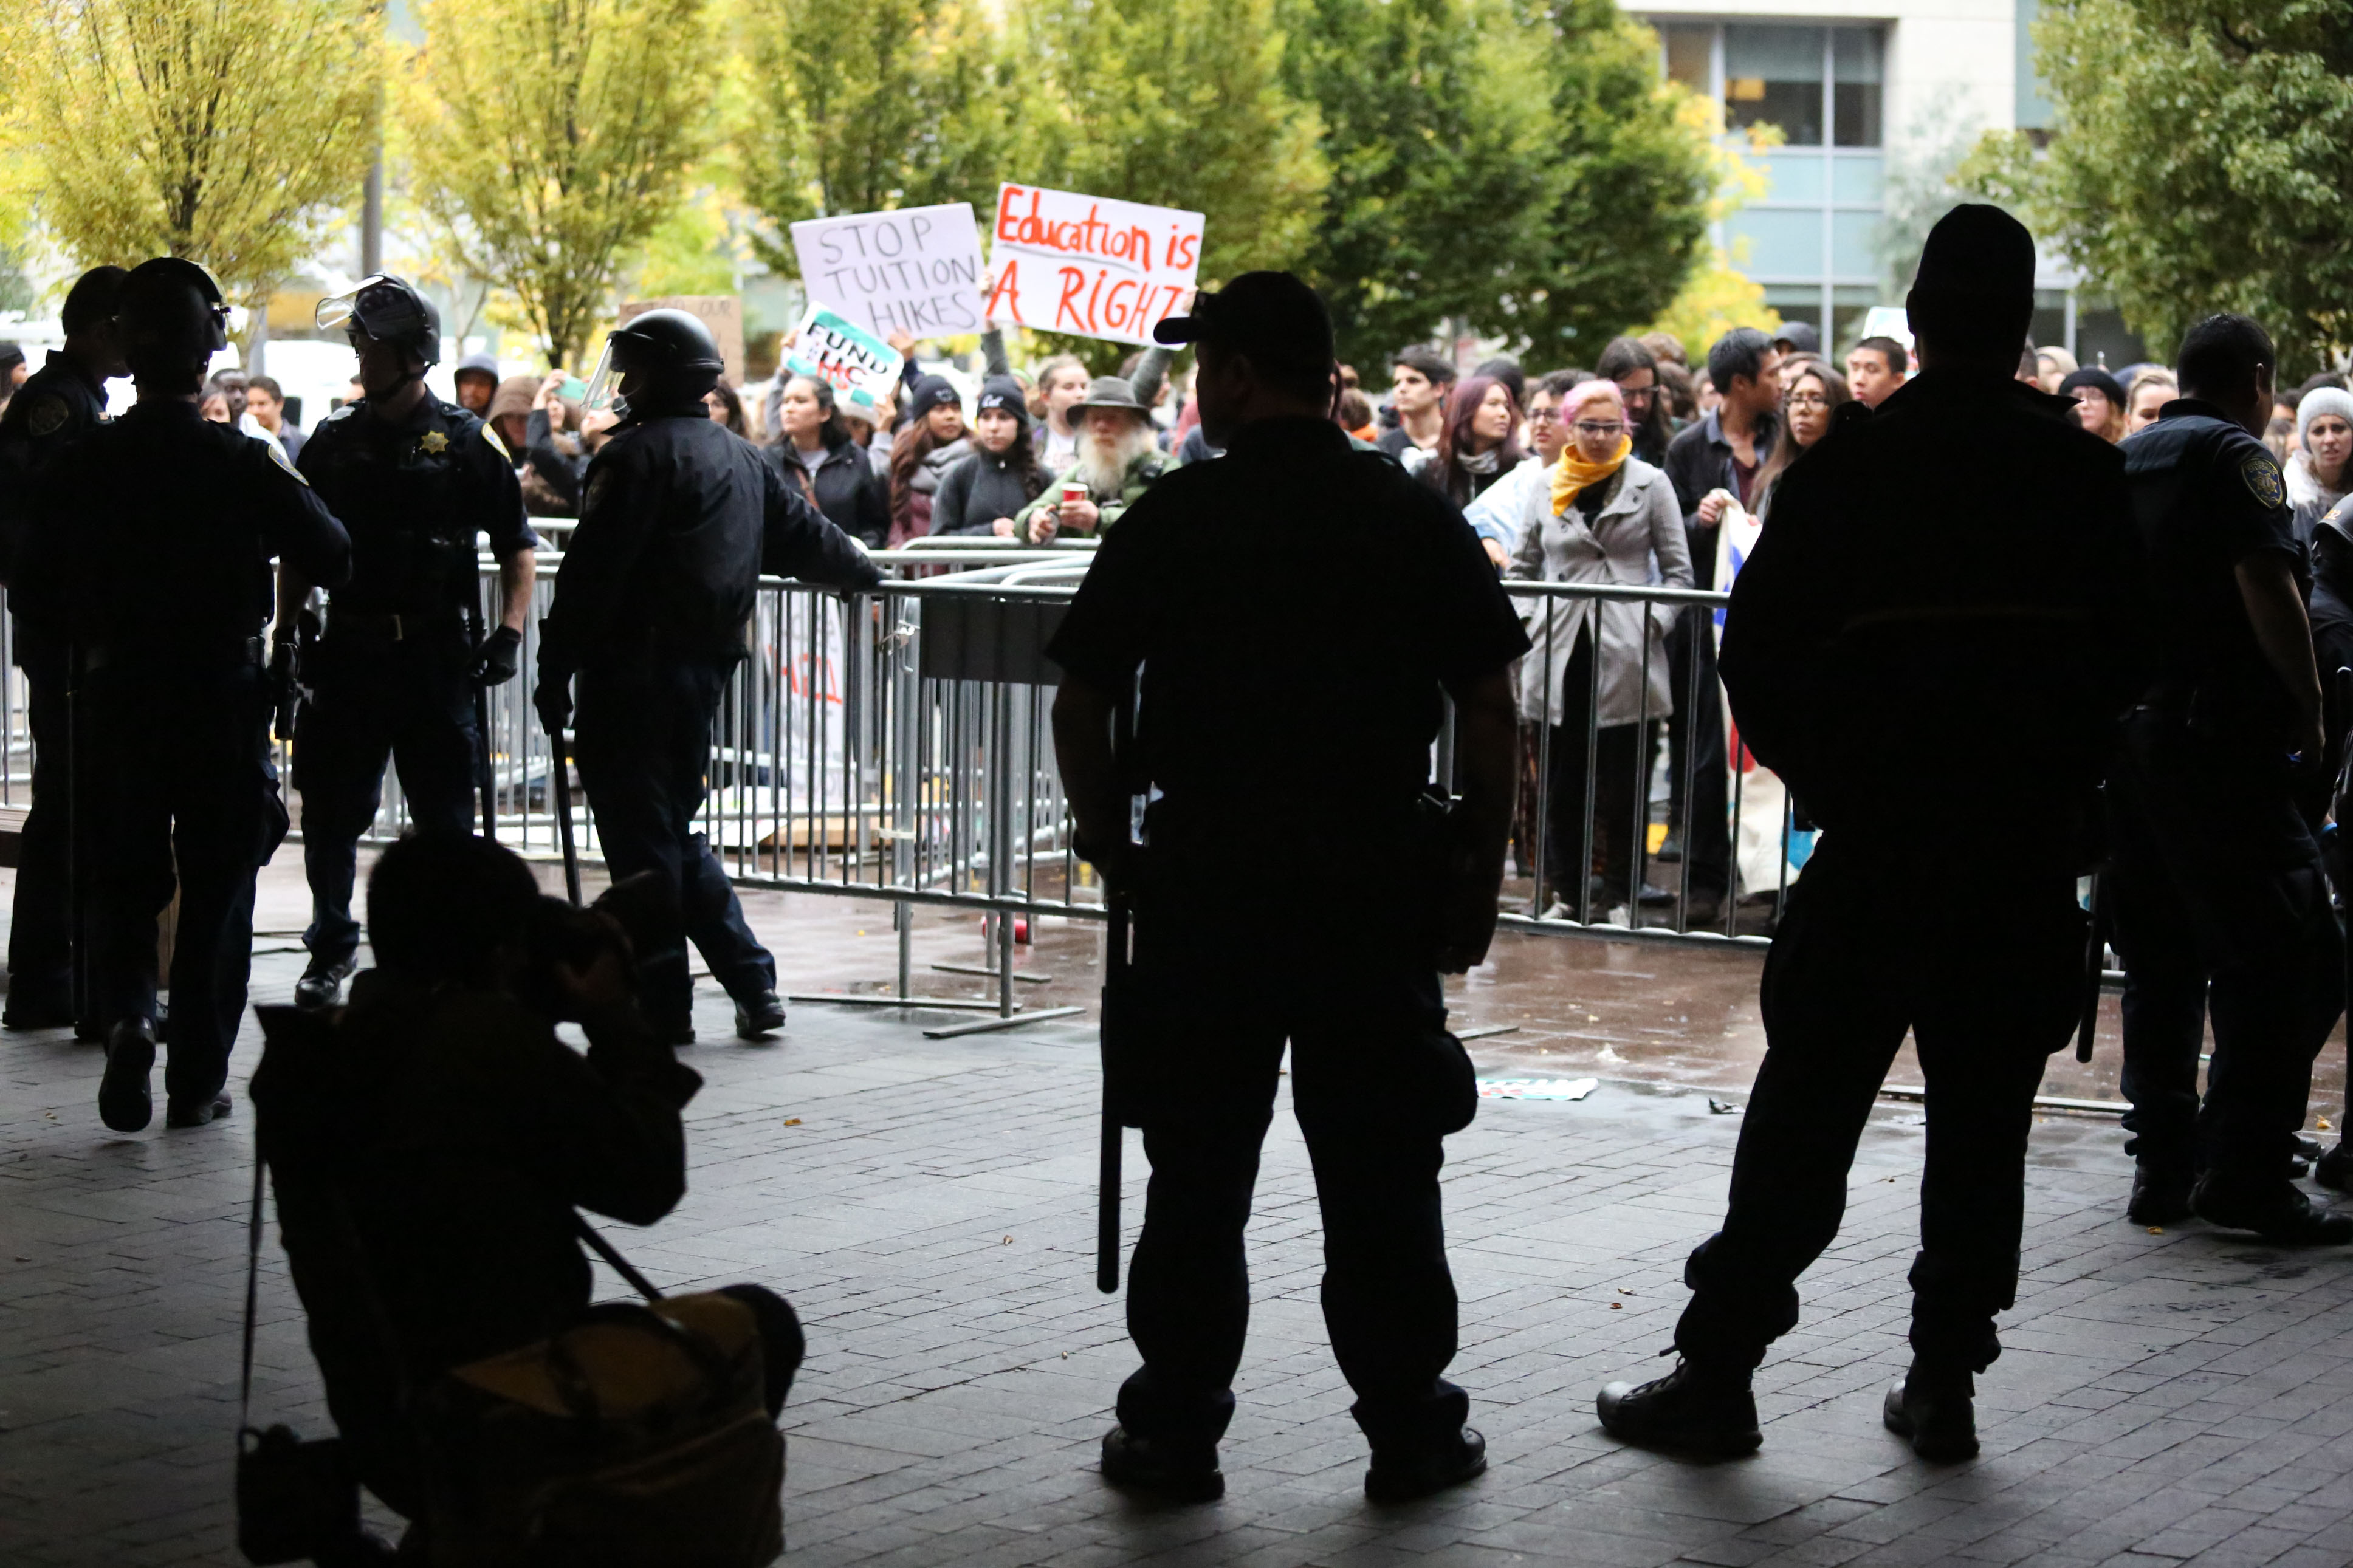 UC Regents Committee Approves Tuition Increase Despite Protests